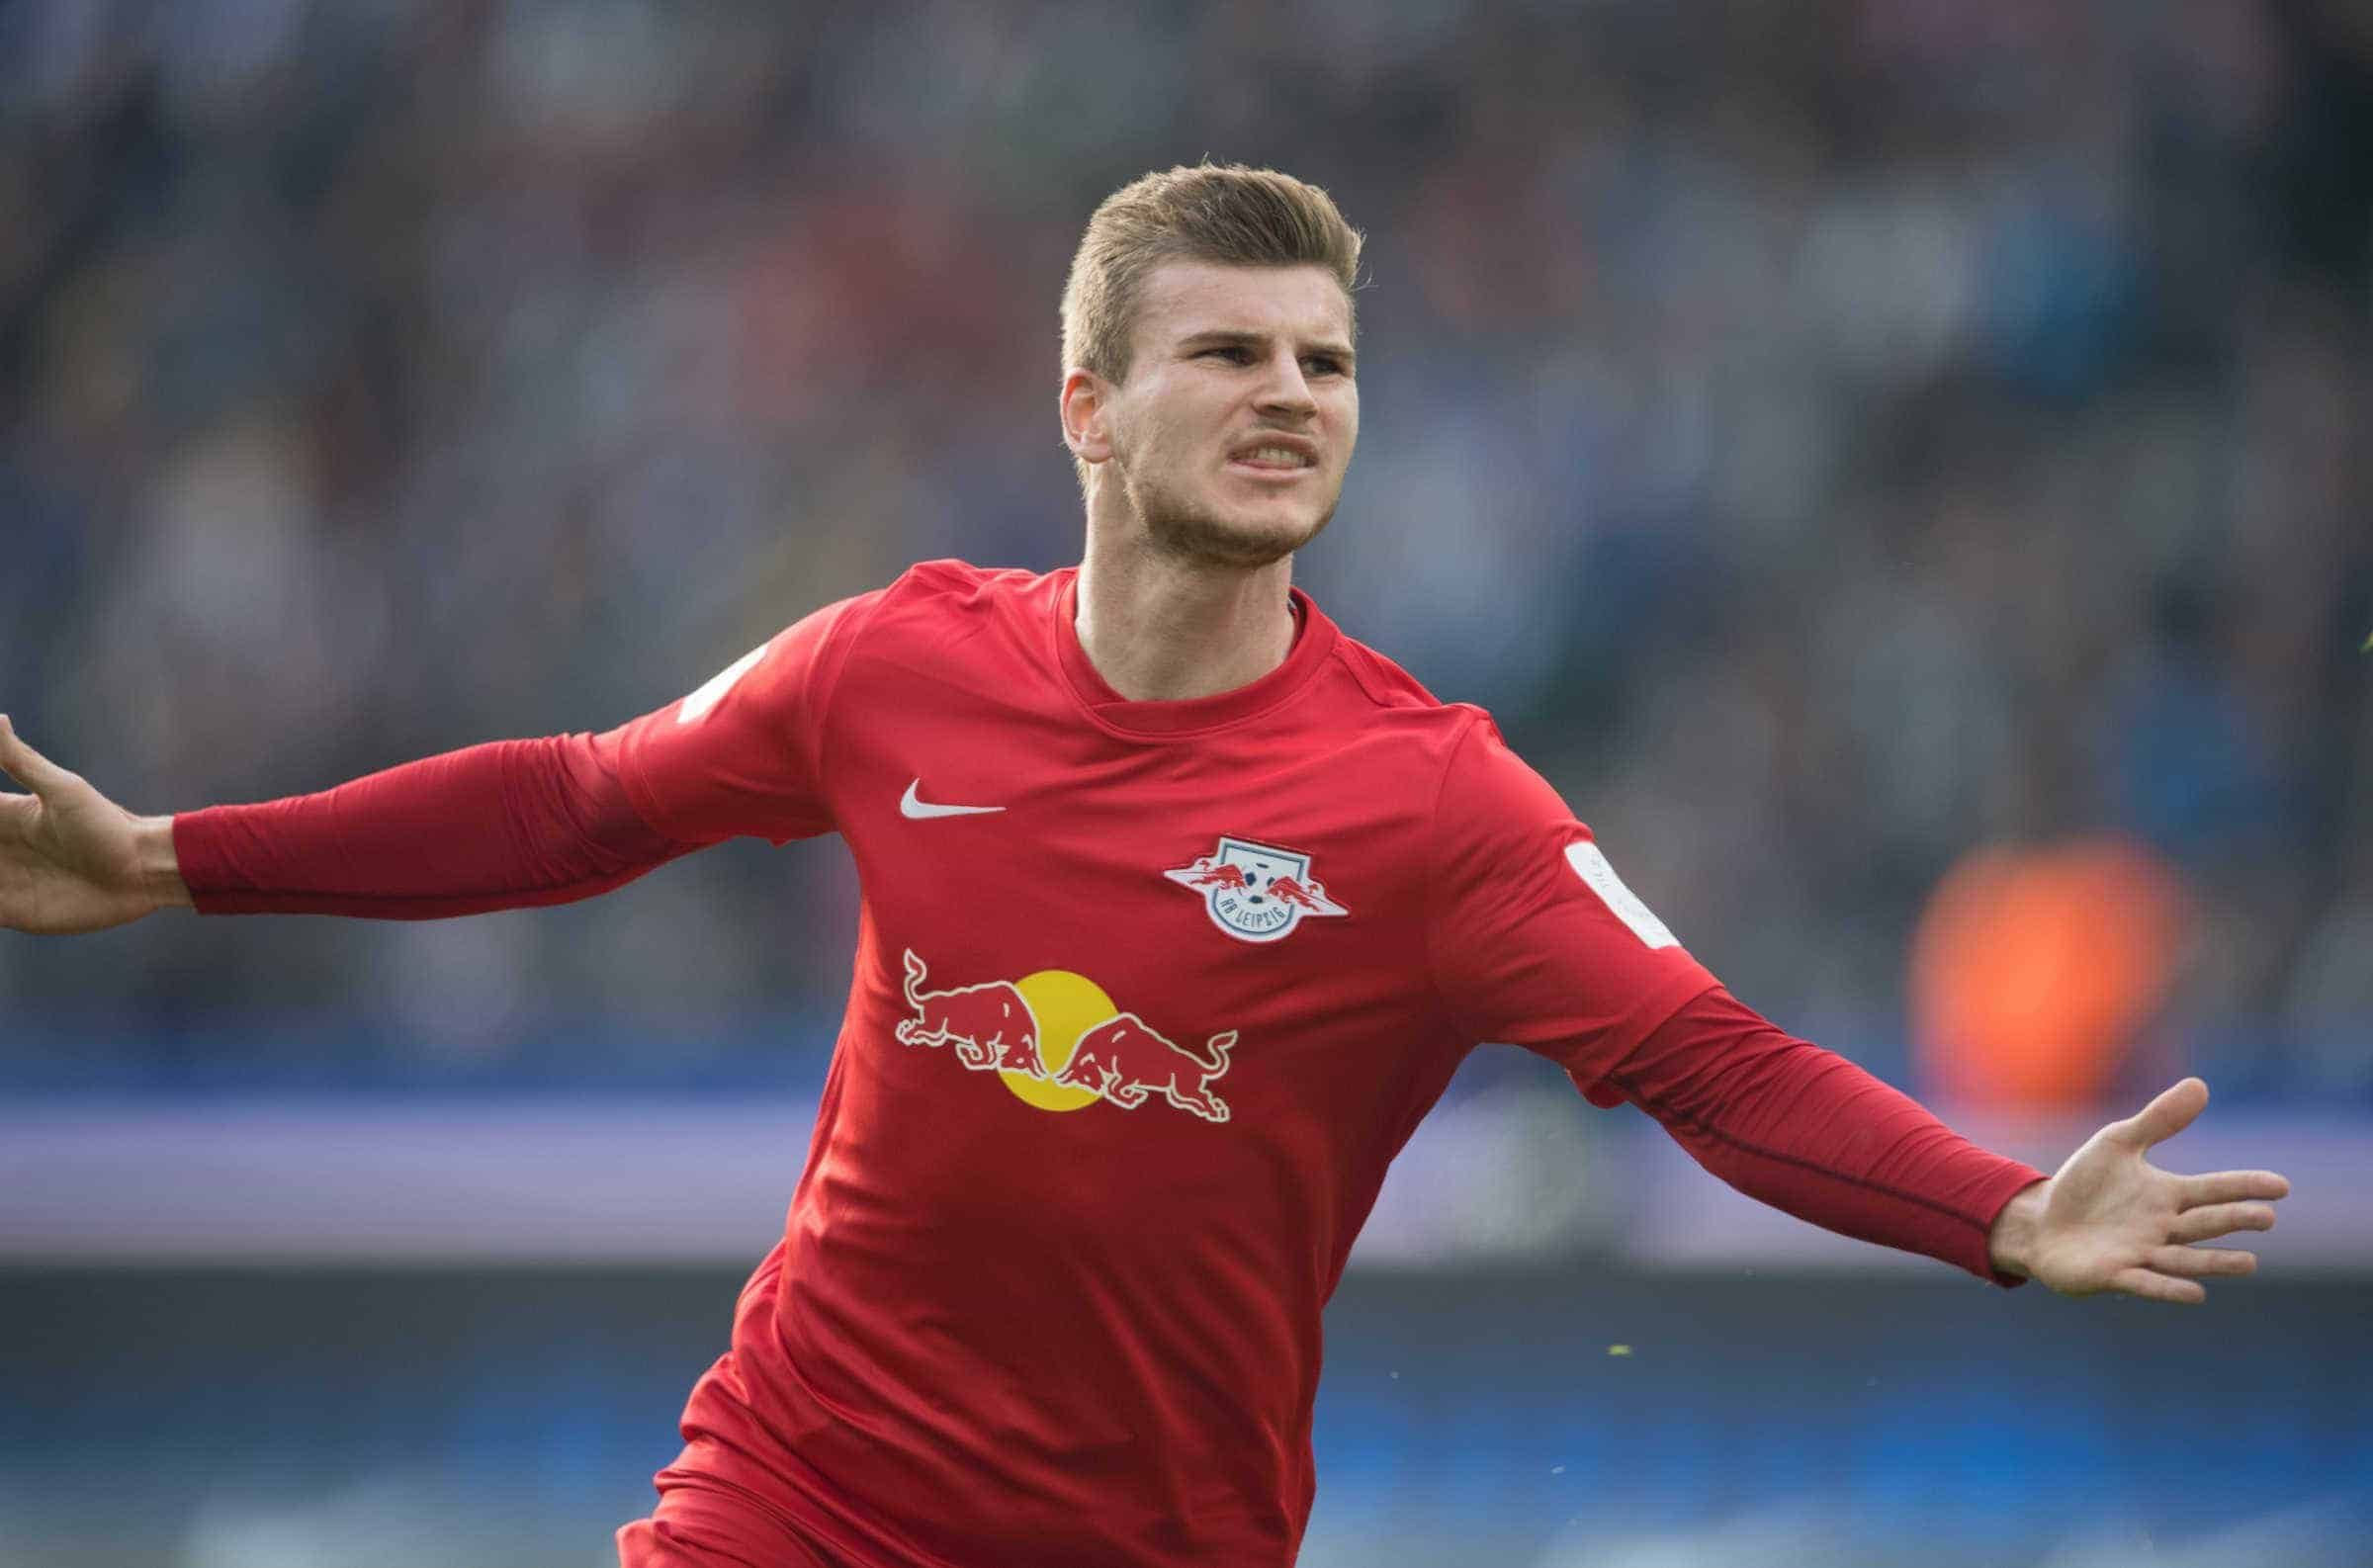 Leipzig's Timo Werner celebrates his 1:0 opener during the German Bundesliga soccer mathc between Hertha BSC and RB Leipzig in the Olympia Stadium in Berlin, Germany, 6 May 2017. Photo: Soeren Stache/dpa